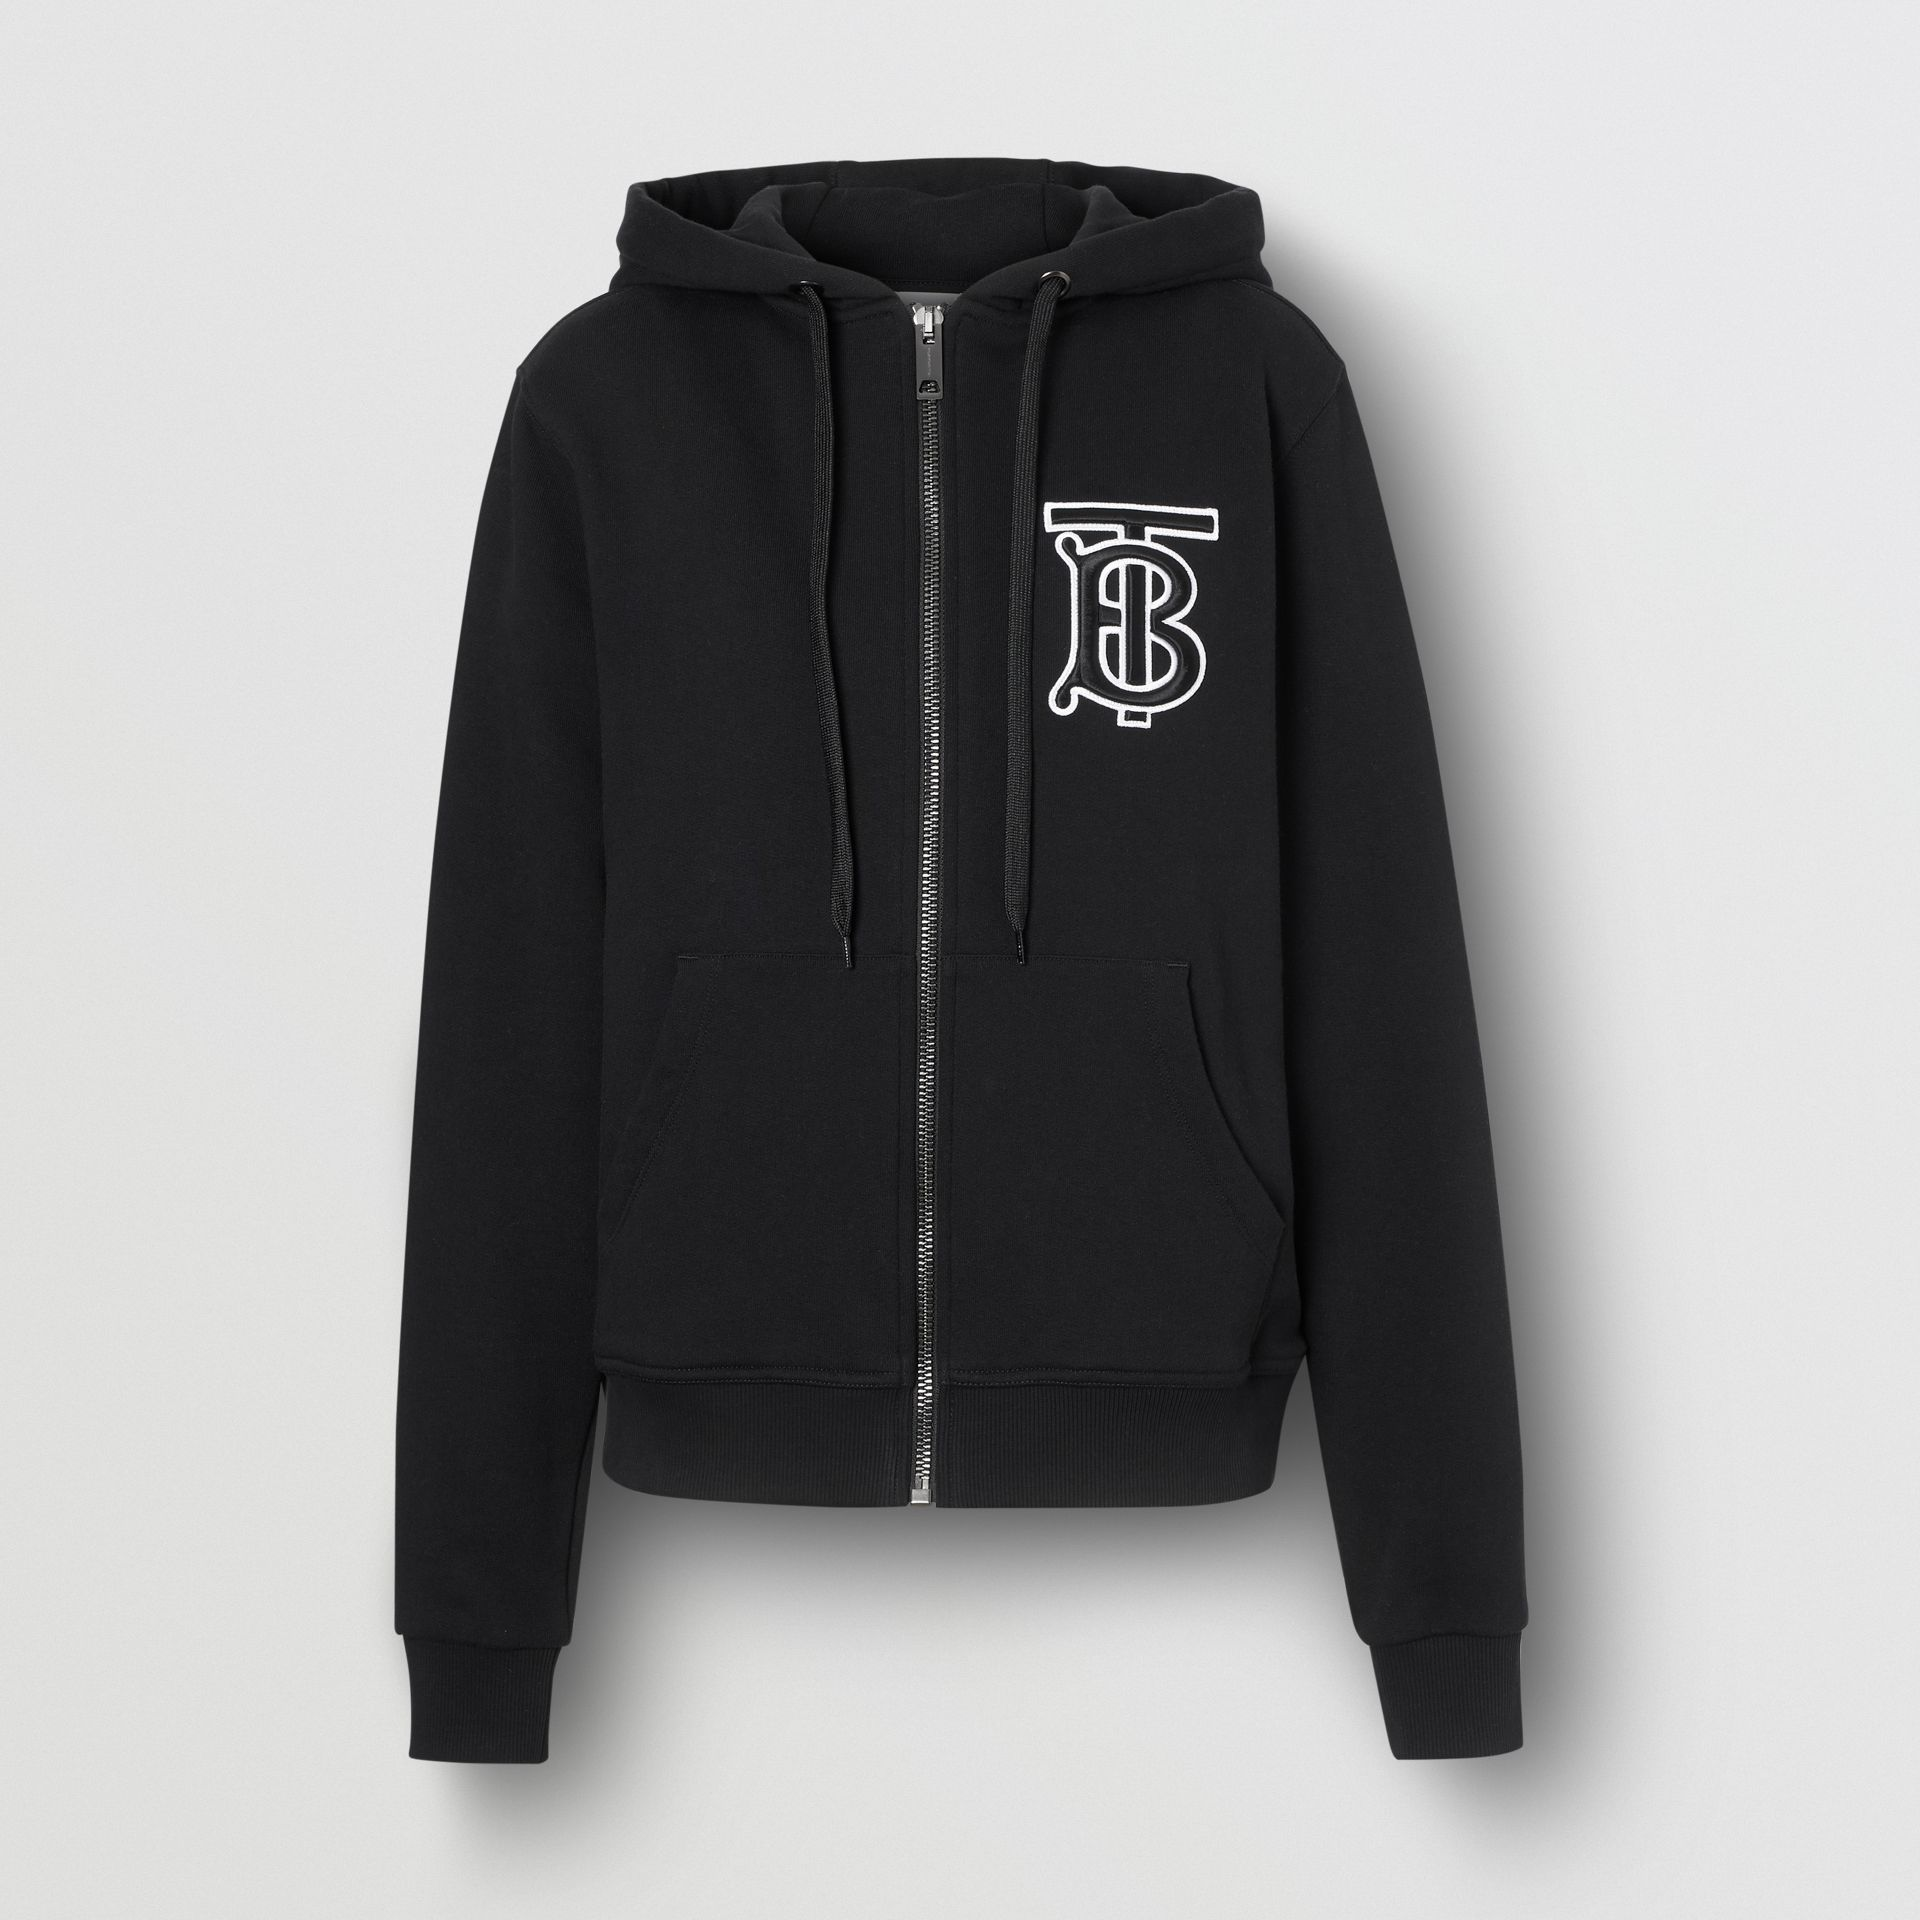 Monogram Motif Cotton Oversized Hooded Top in Black - Women | Burberry - gallery image 3